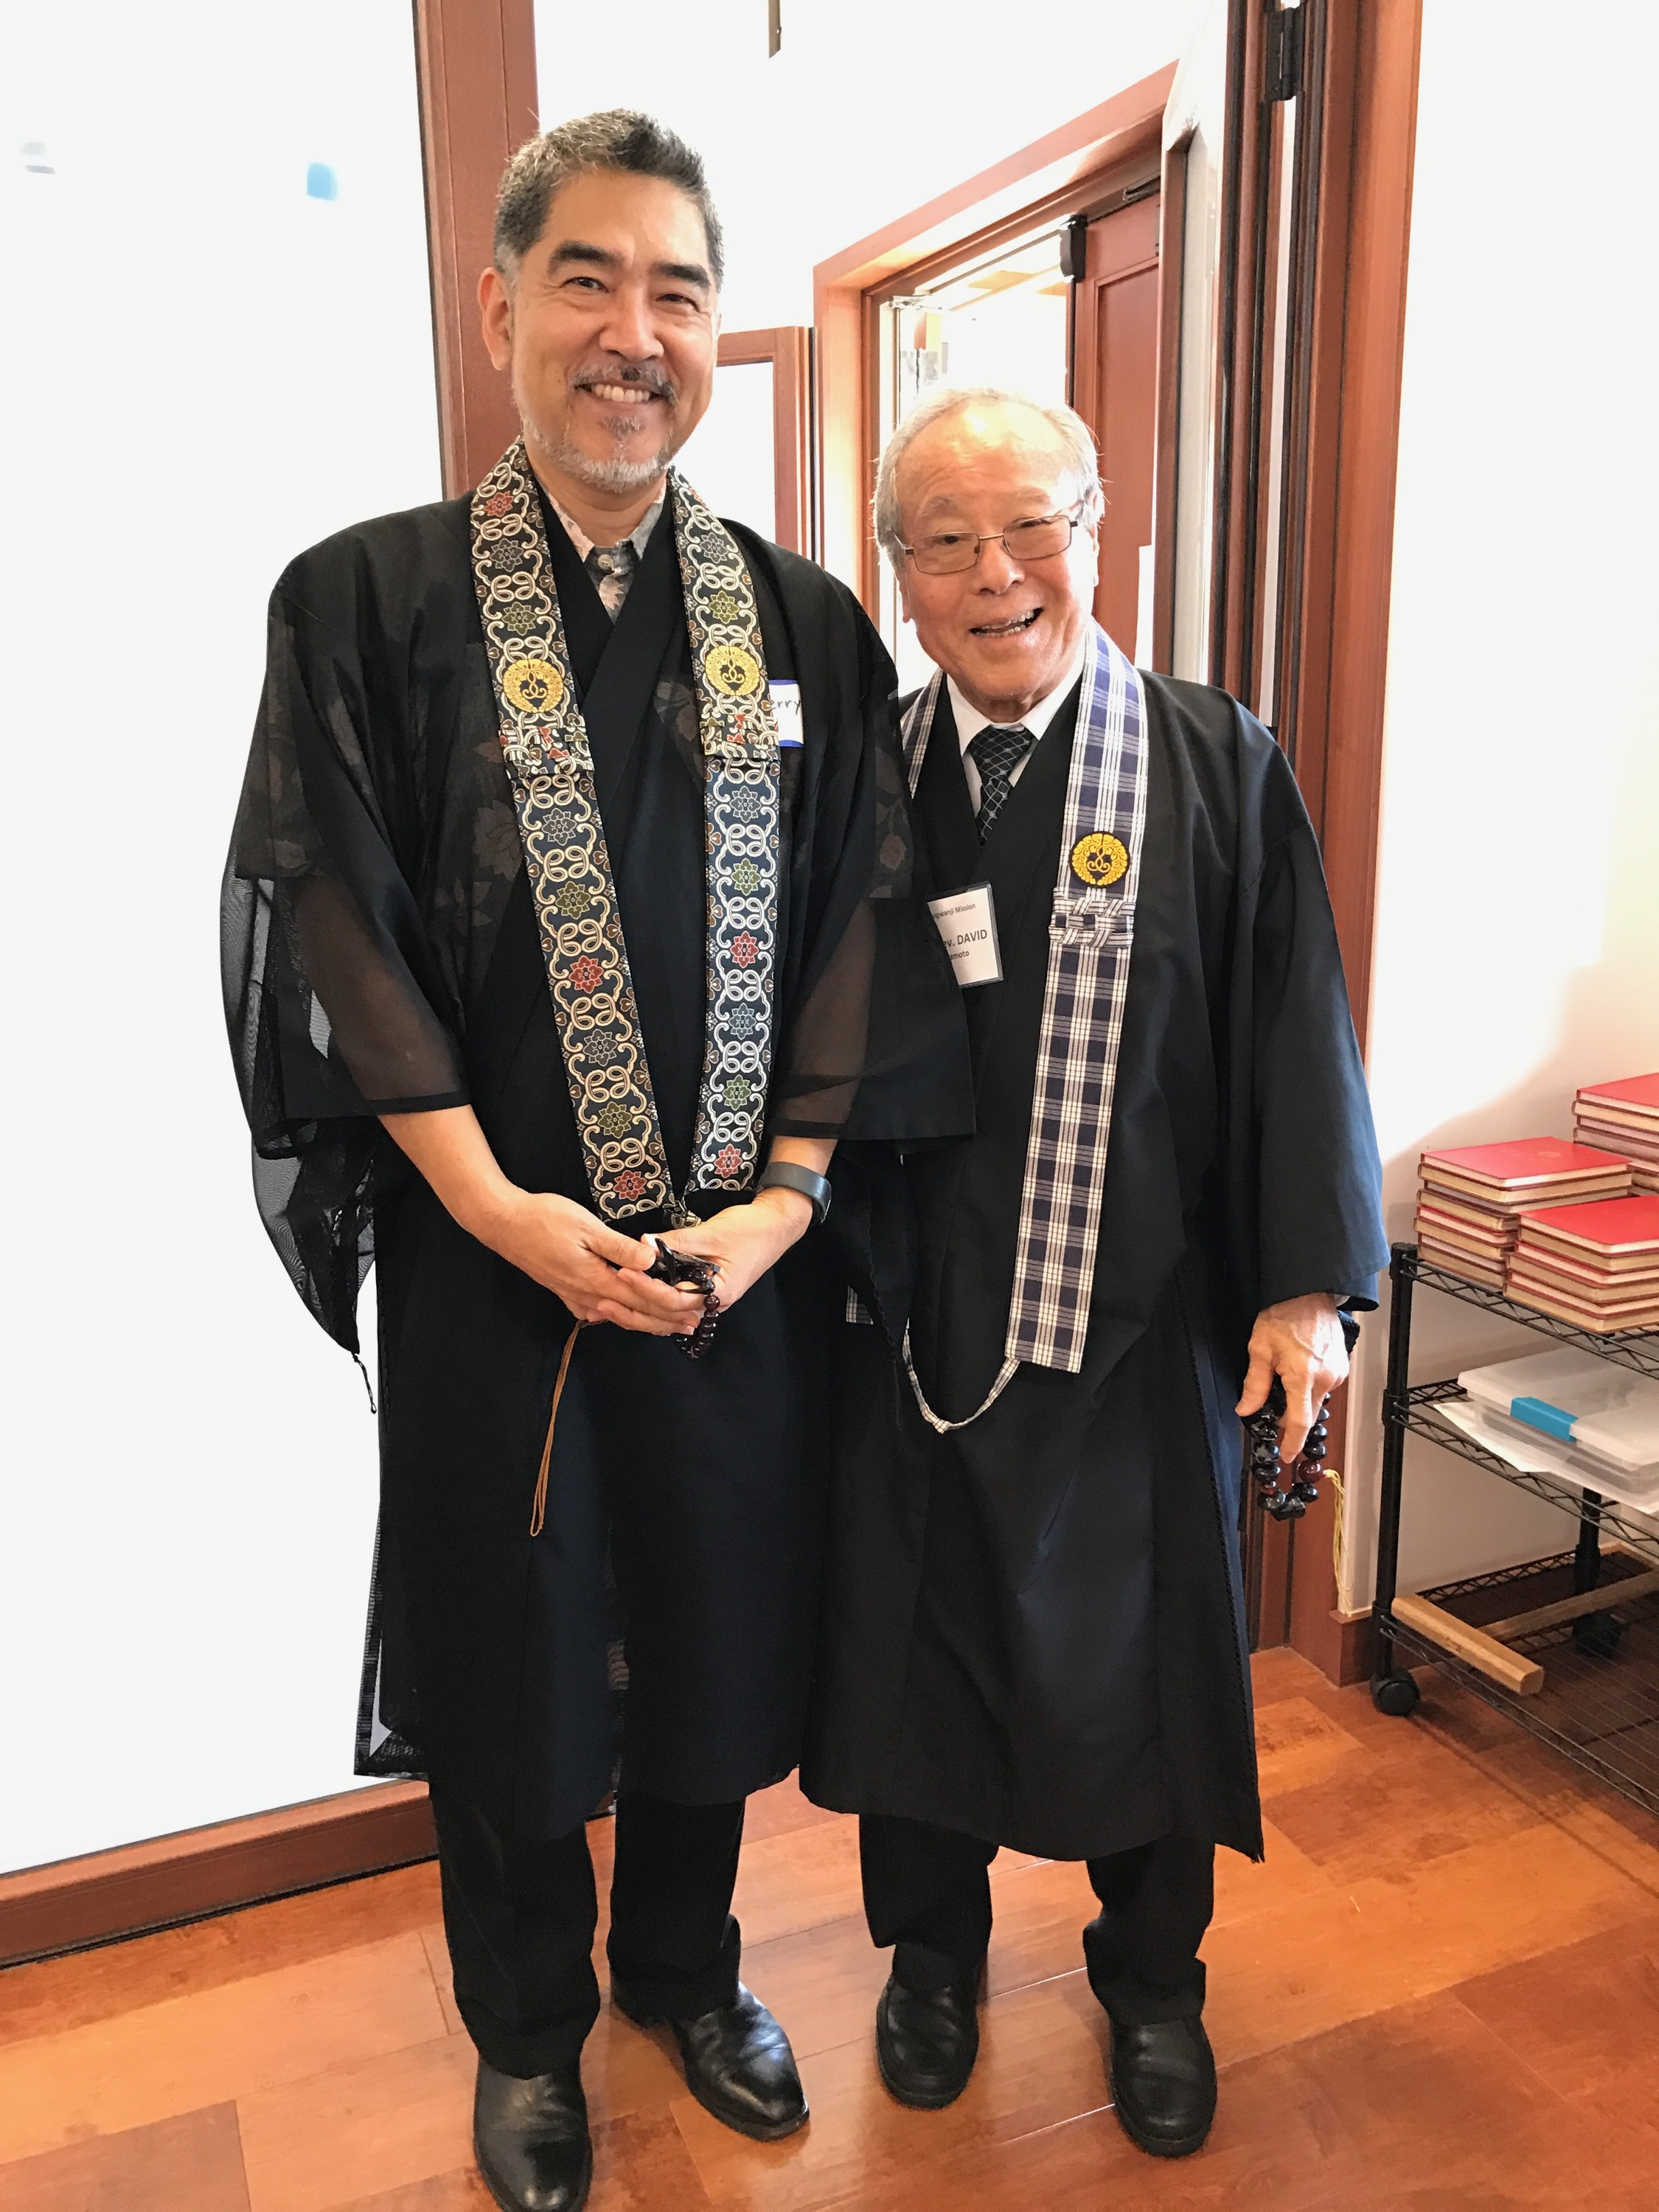 Rev. Kerry Kiyohara and Rev. David Nakamoto